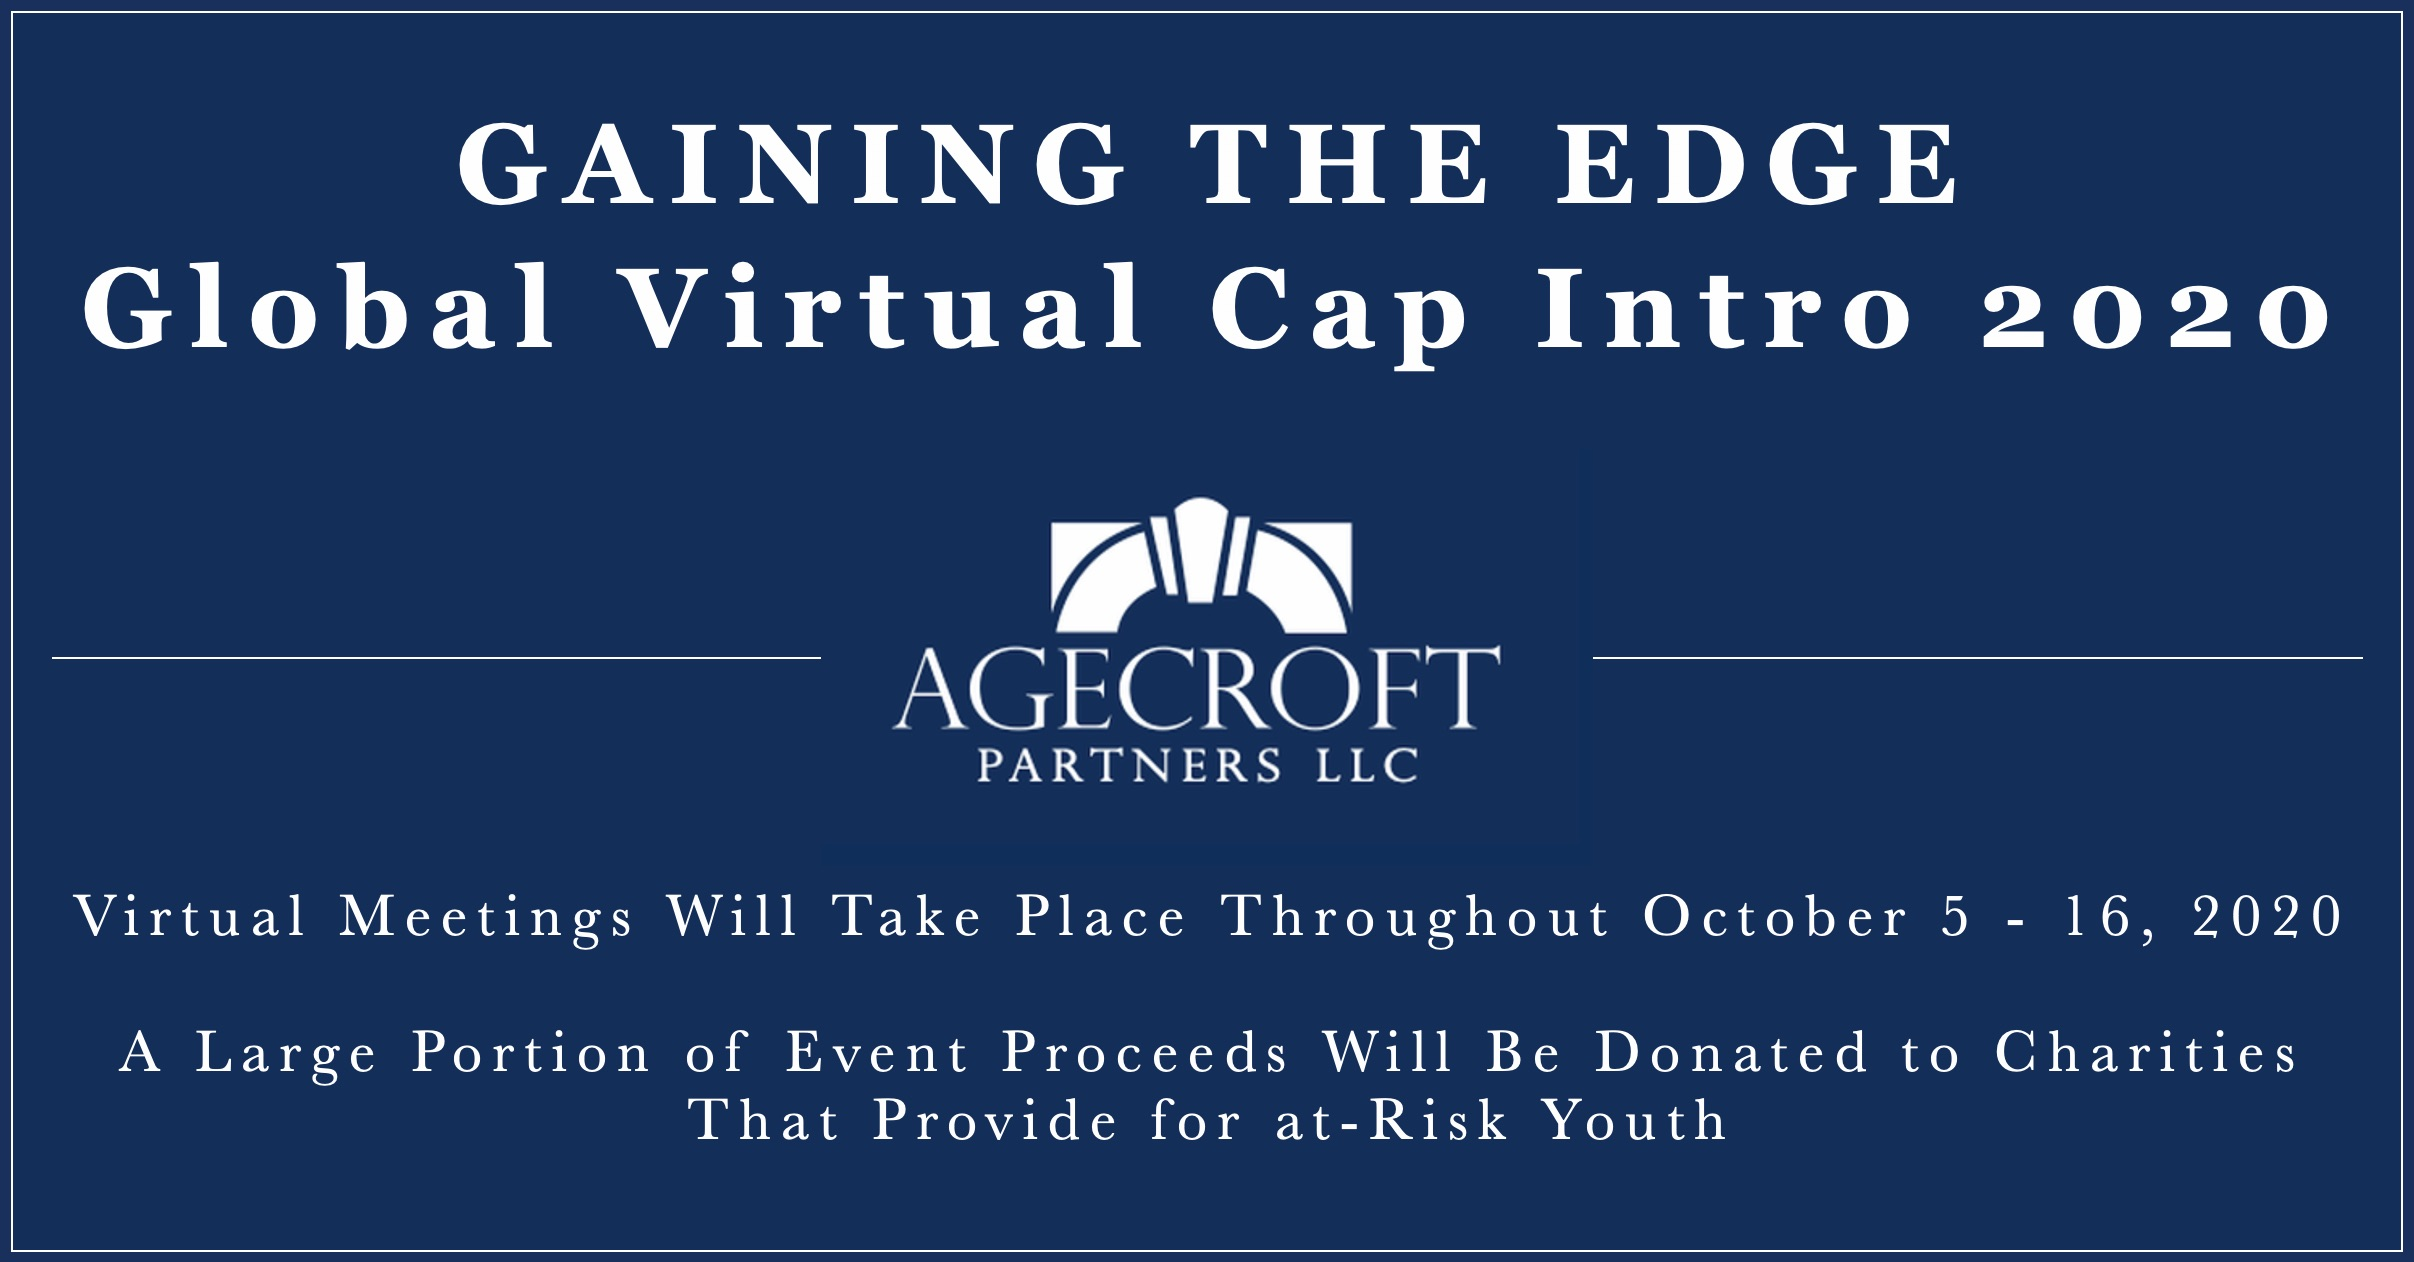 Gaining The Edge - Global Virtual Cap Intro 2020 organized by Agecroft Partners